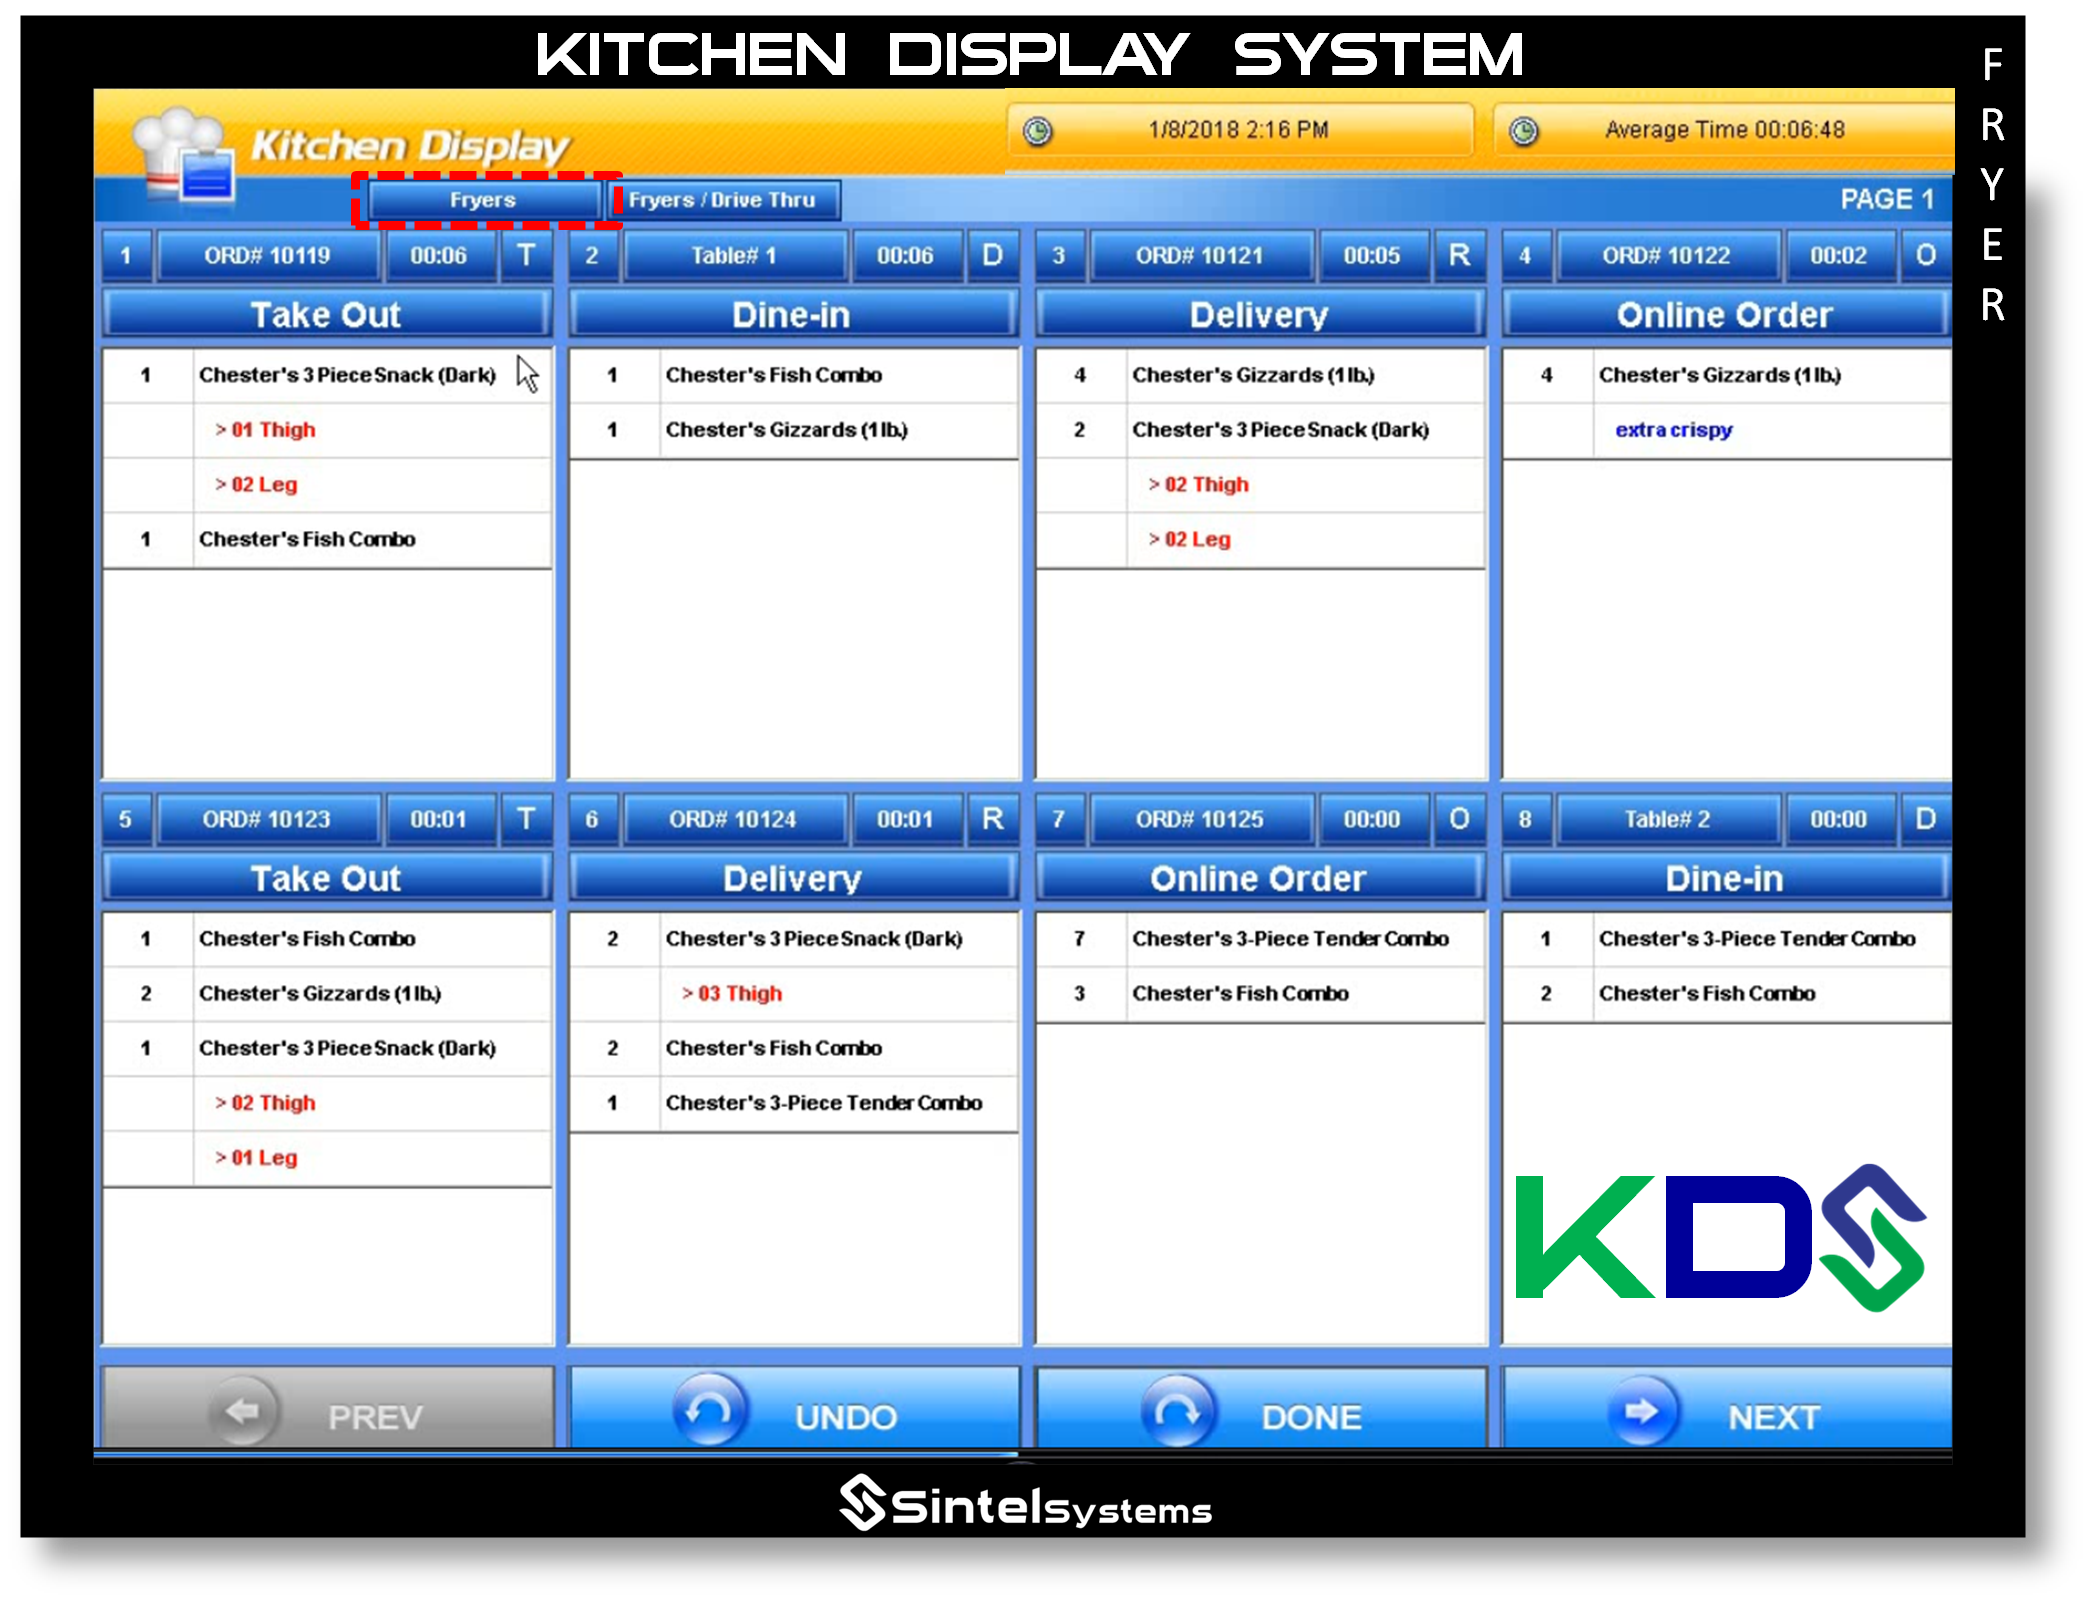 Image-2-KDS-Kitchen-Display-Systems-POS-Fryer-Drive-Thru